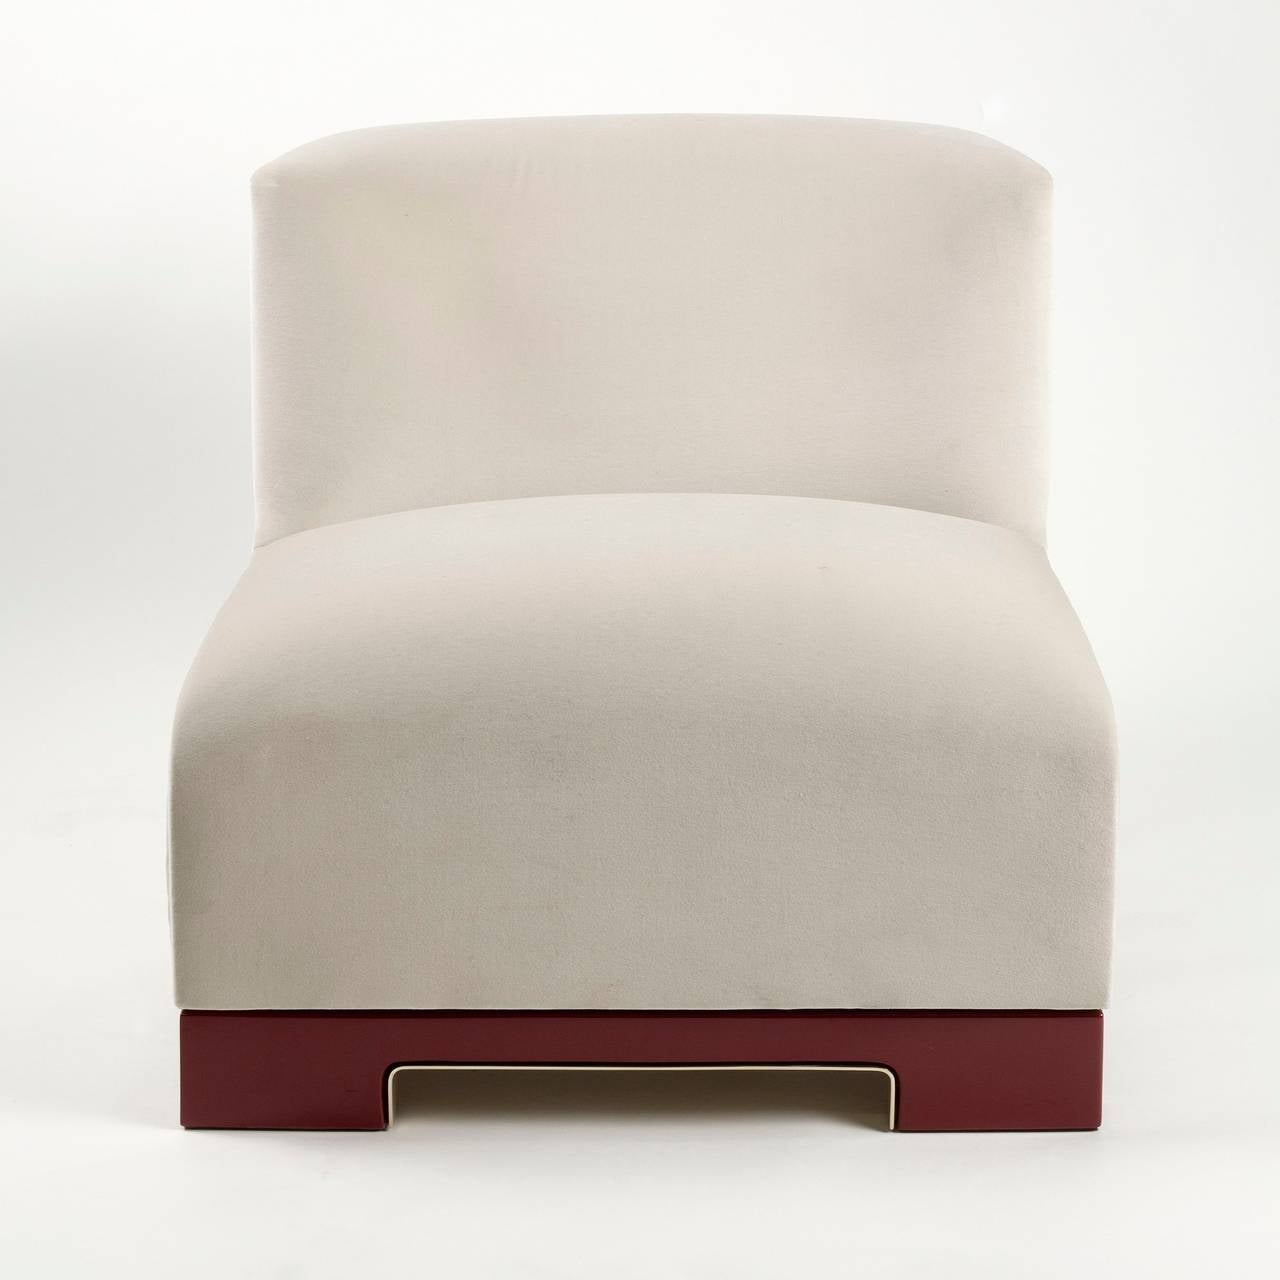 "Achille Salvagni, ""Vittoria"", Velvet and Lacquer Chair, Italy, 2014 4"